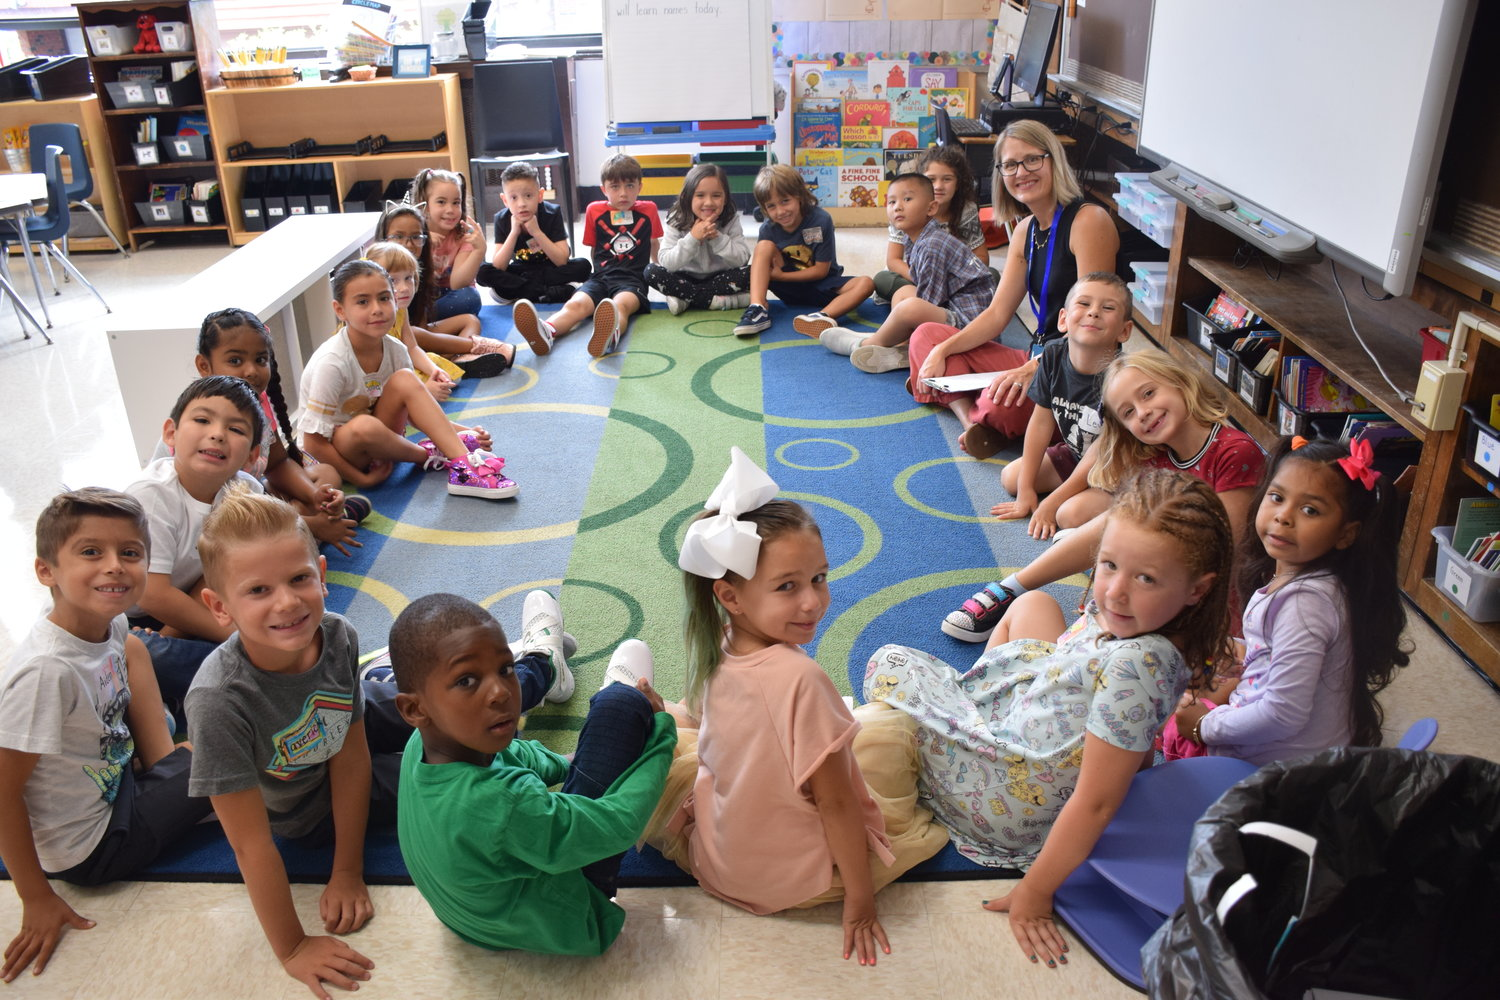 East Elementary School students made introductions, reviewed schedules and rules on the first day of classes.